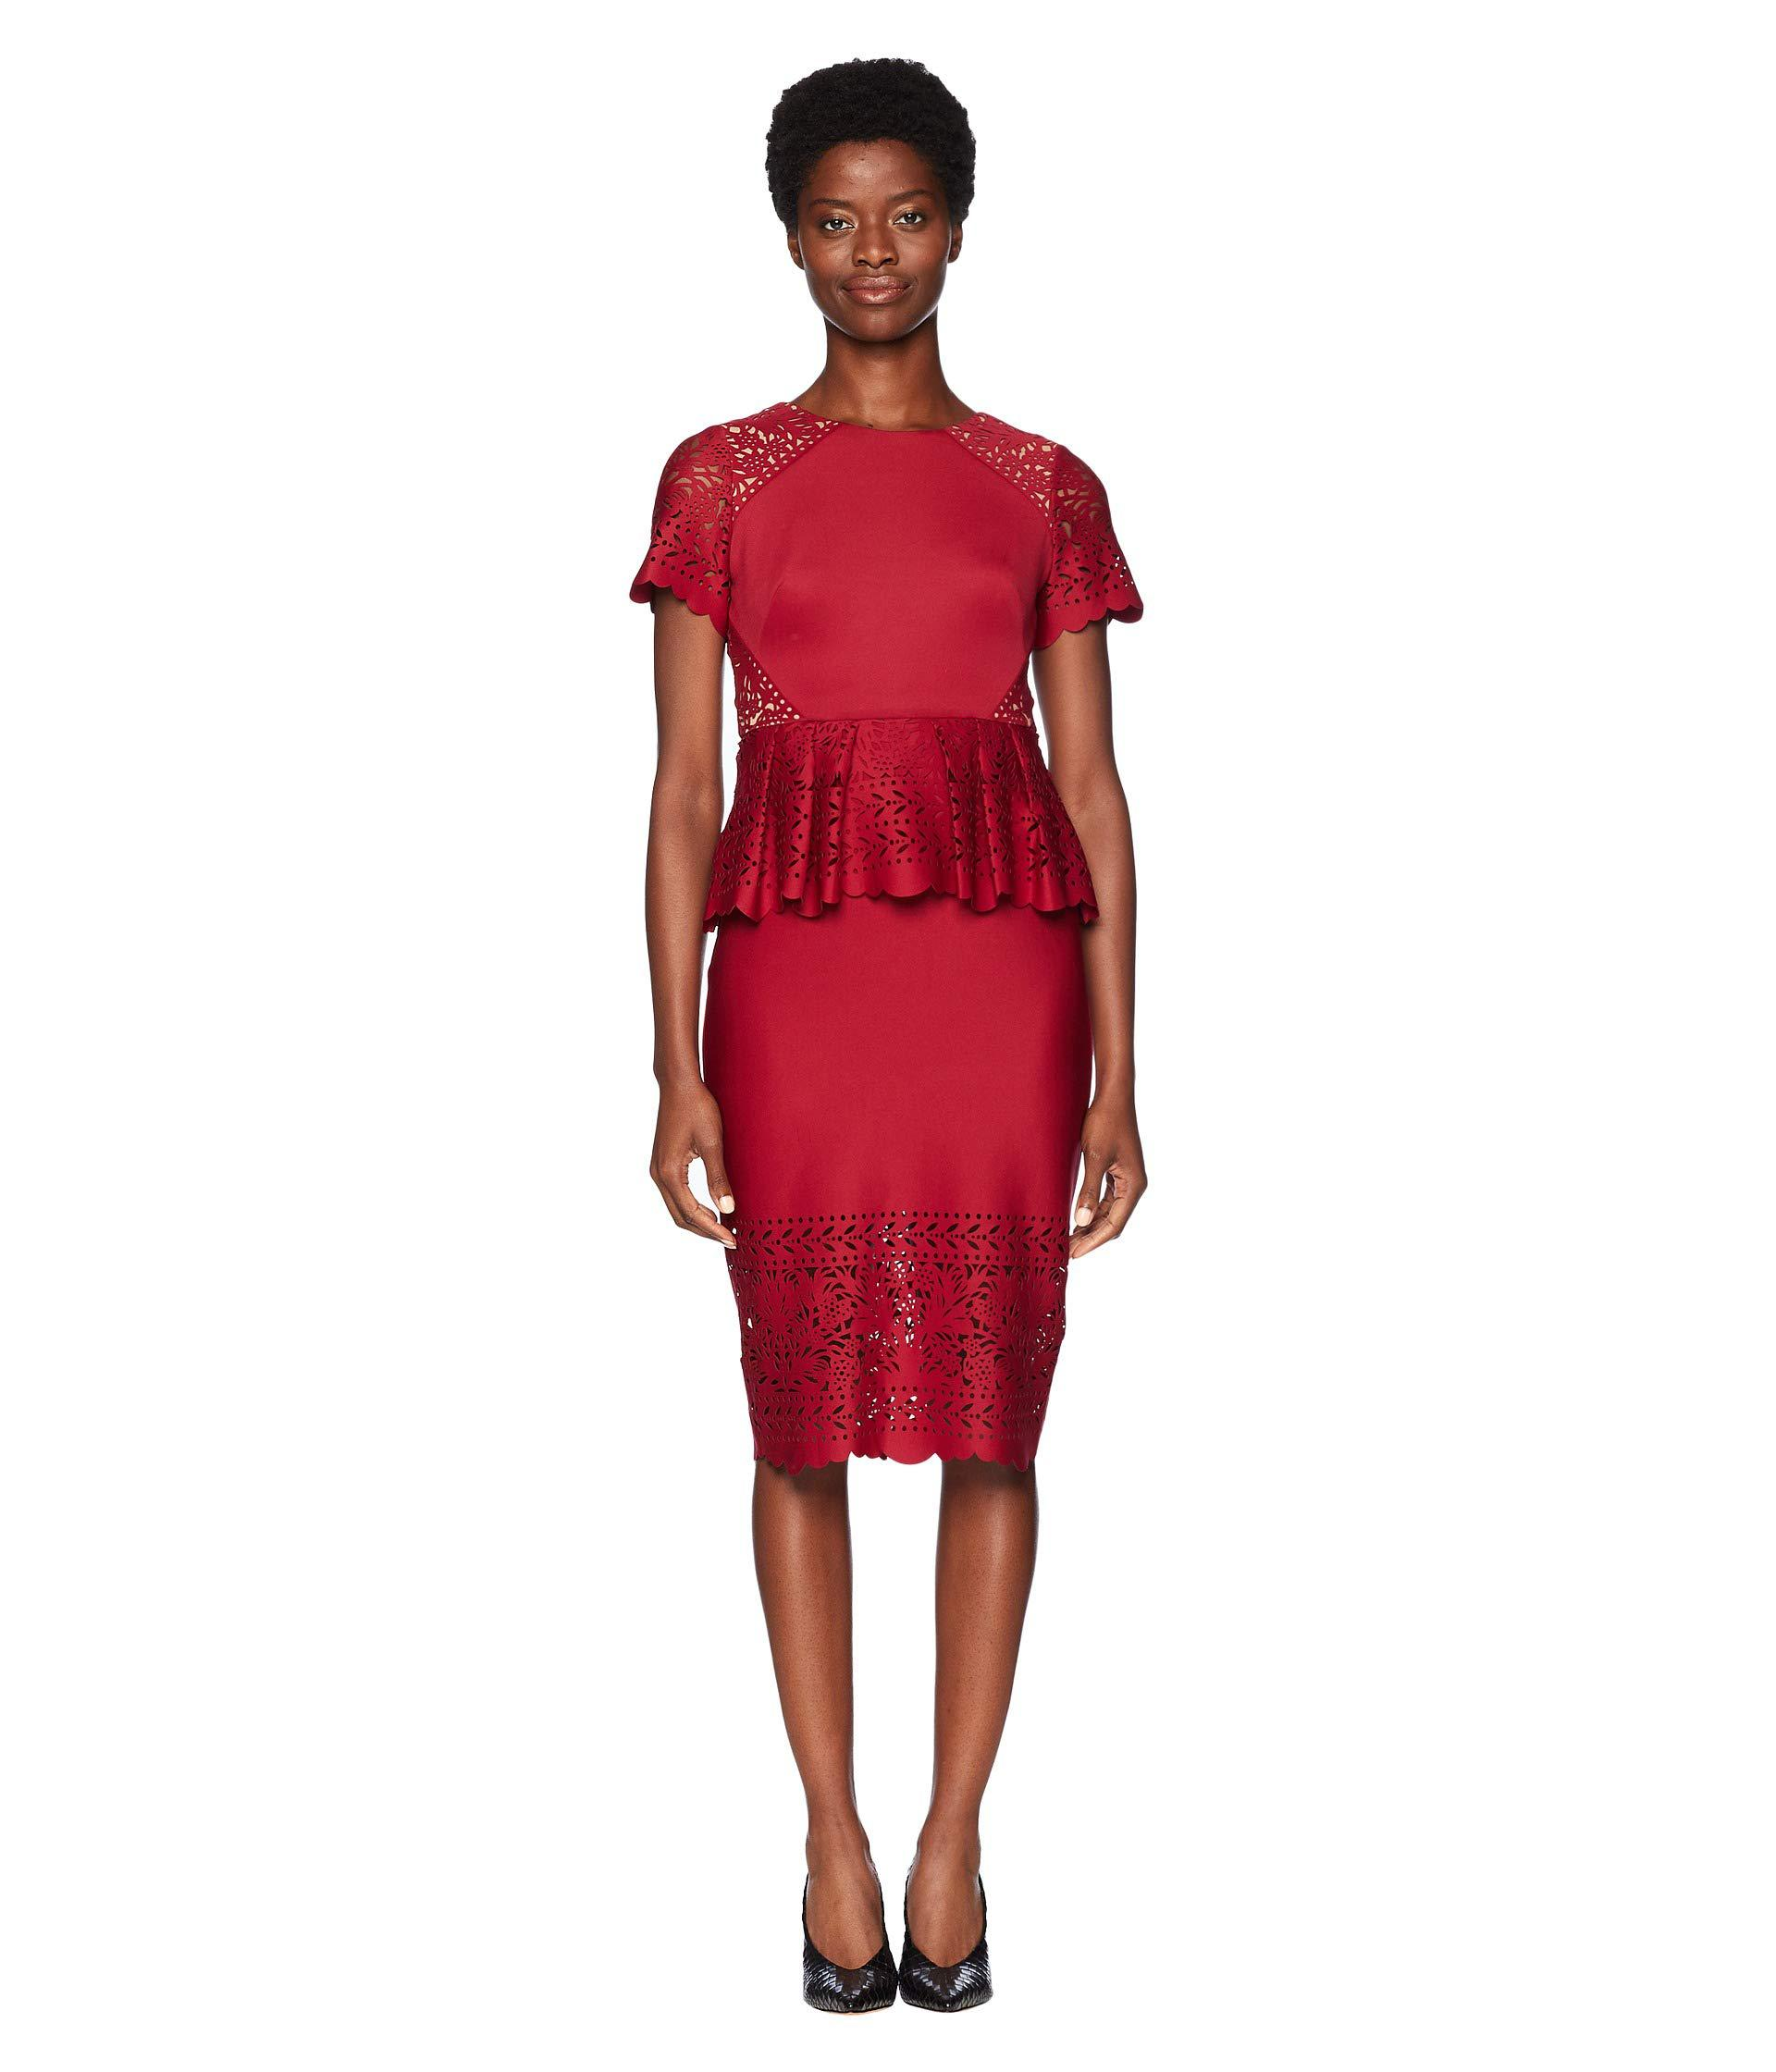 49b5111f5209 Short Red Cocktail Dresses Sale – DACC